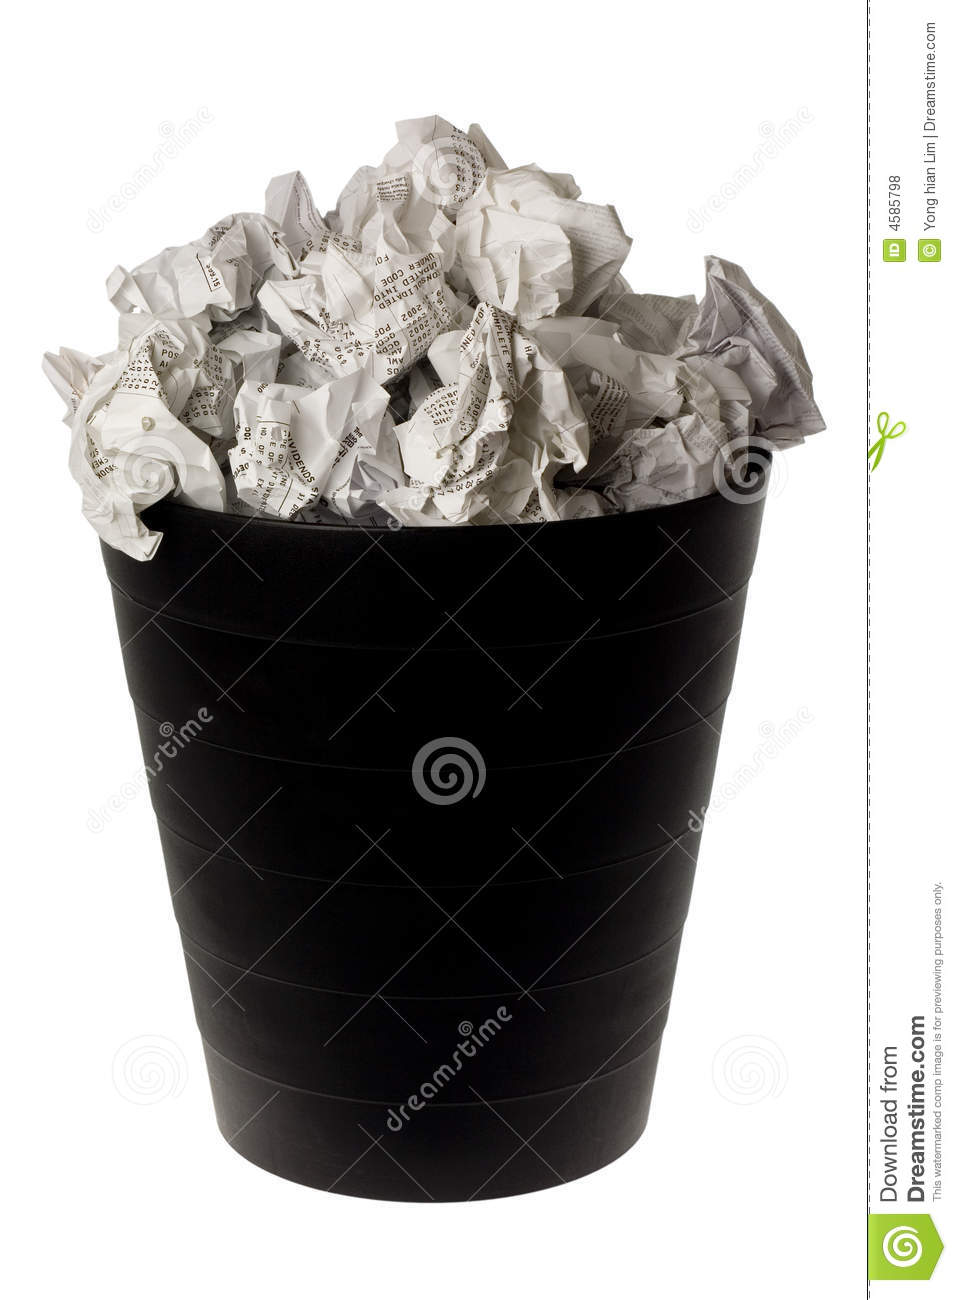 Wastepaper Basket wastepaper basket full of crumpled paper royalty free stock photos